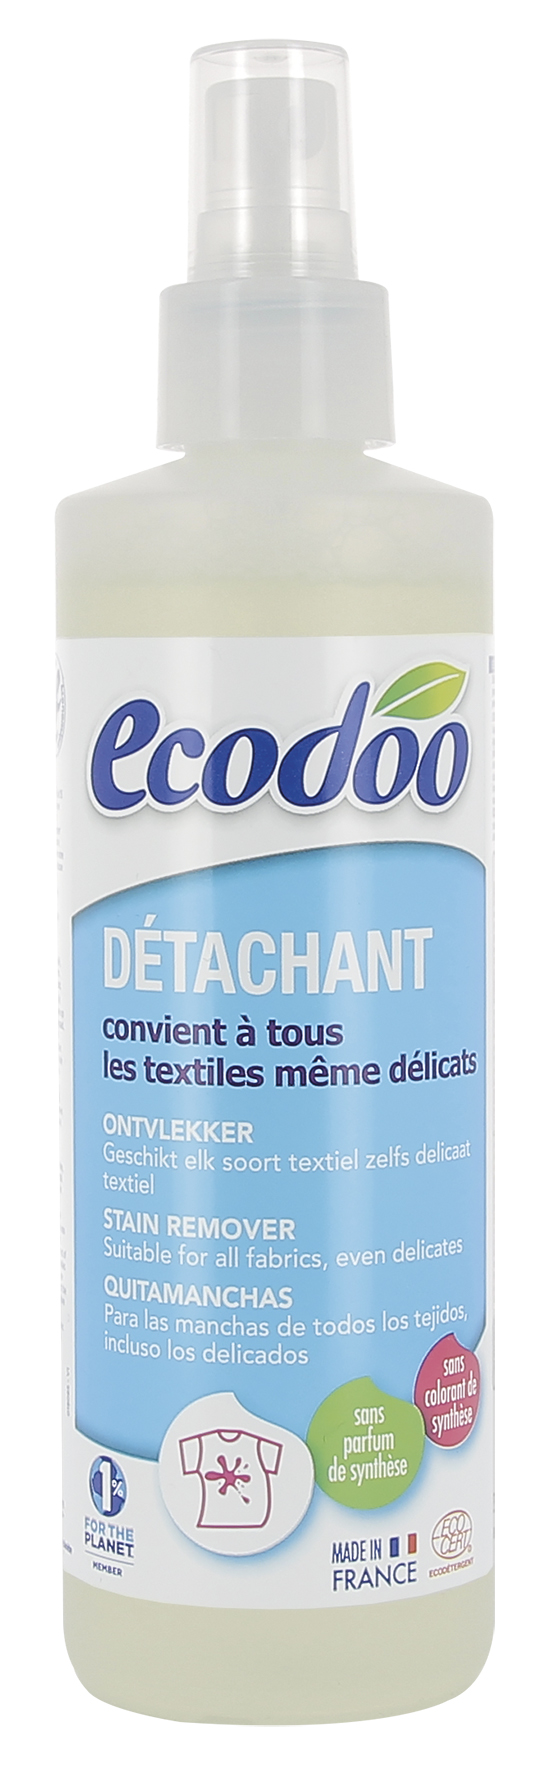 Détachant, Ecodoo (250 ml)